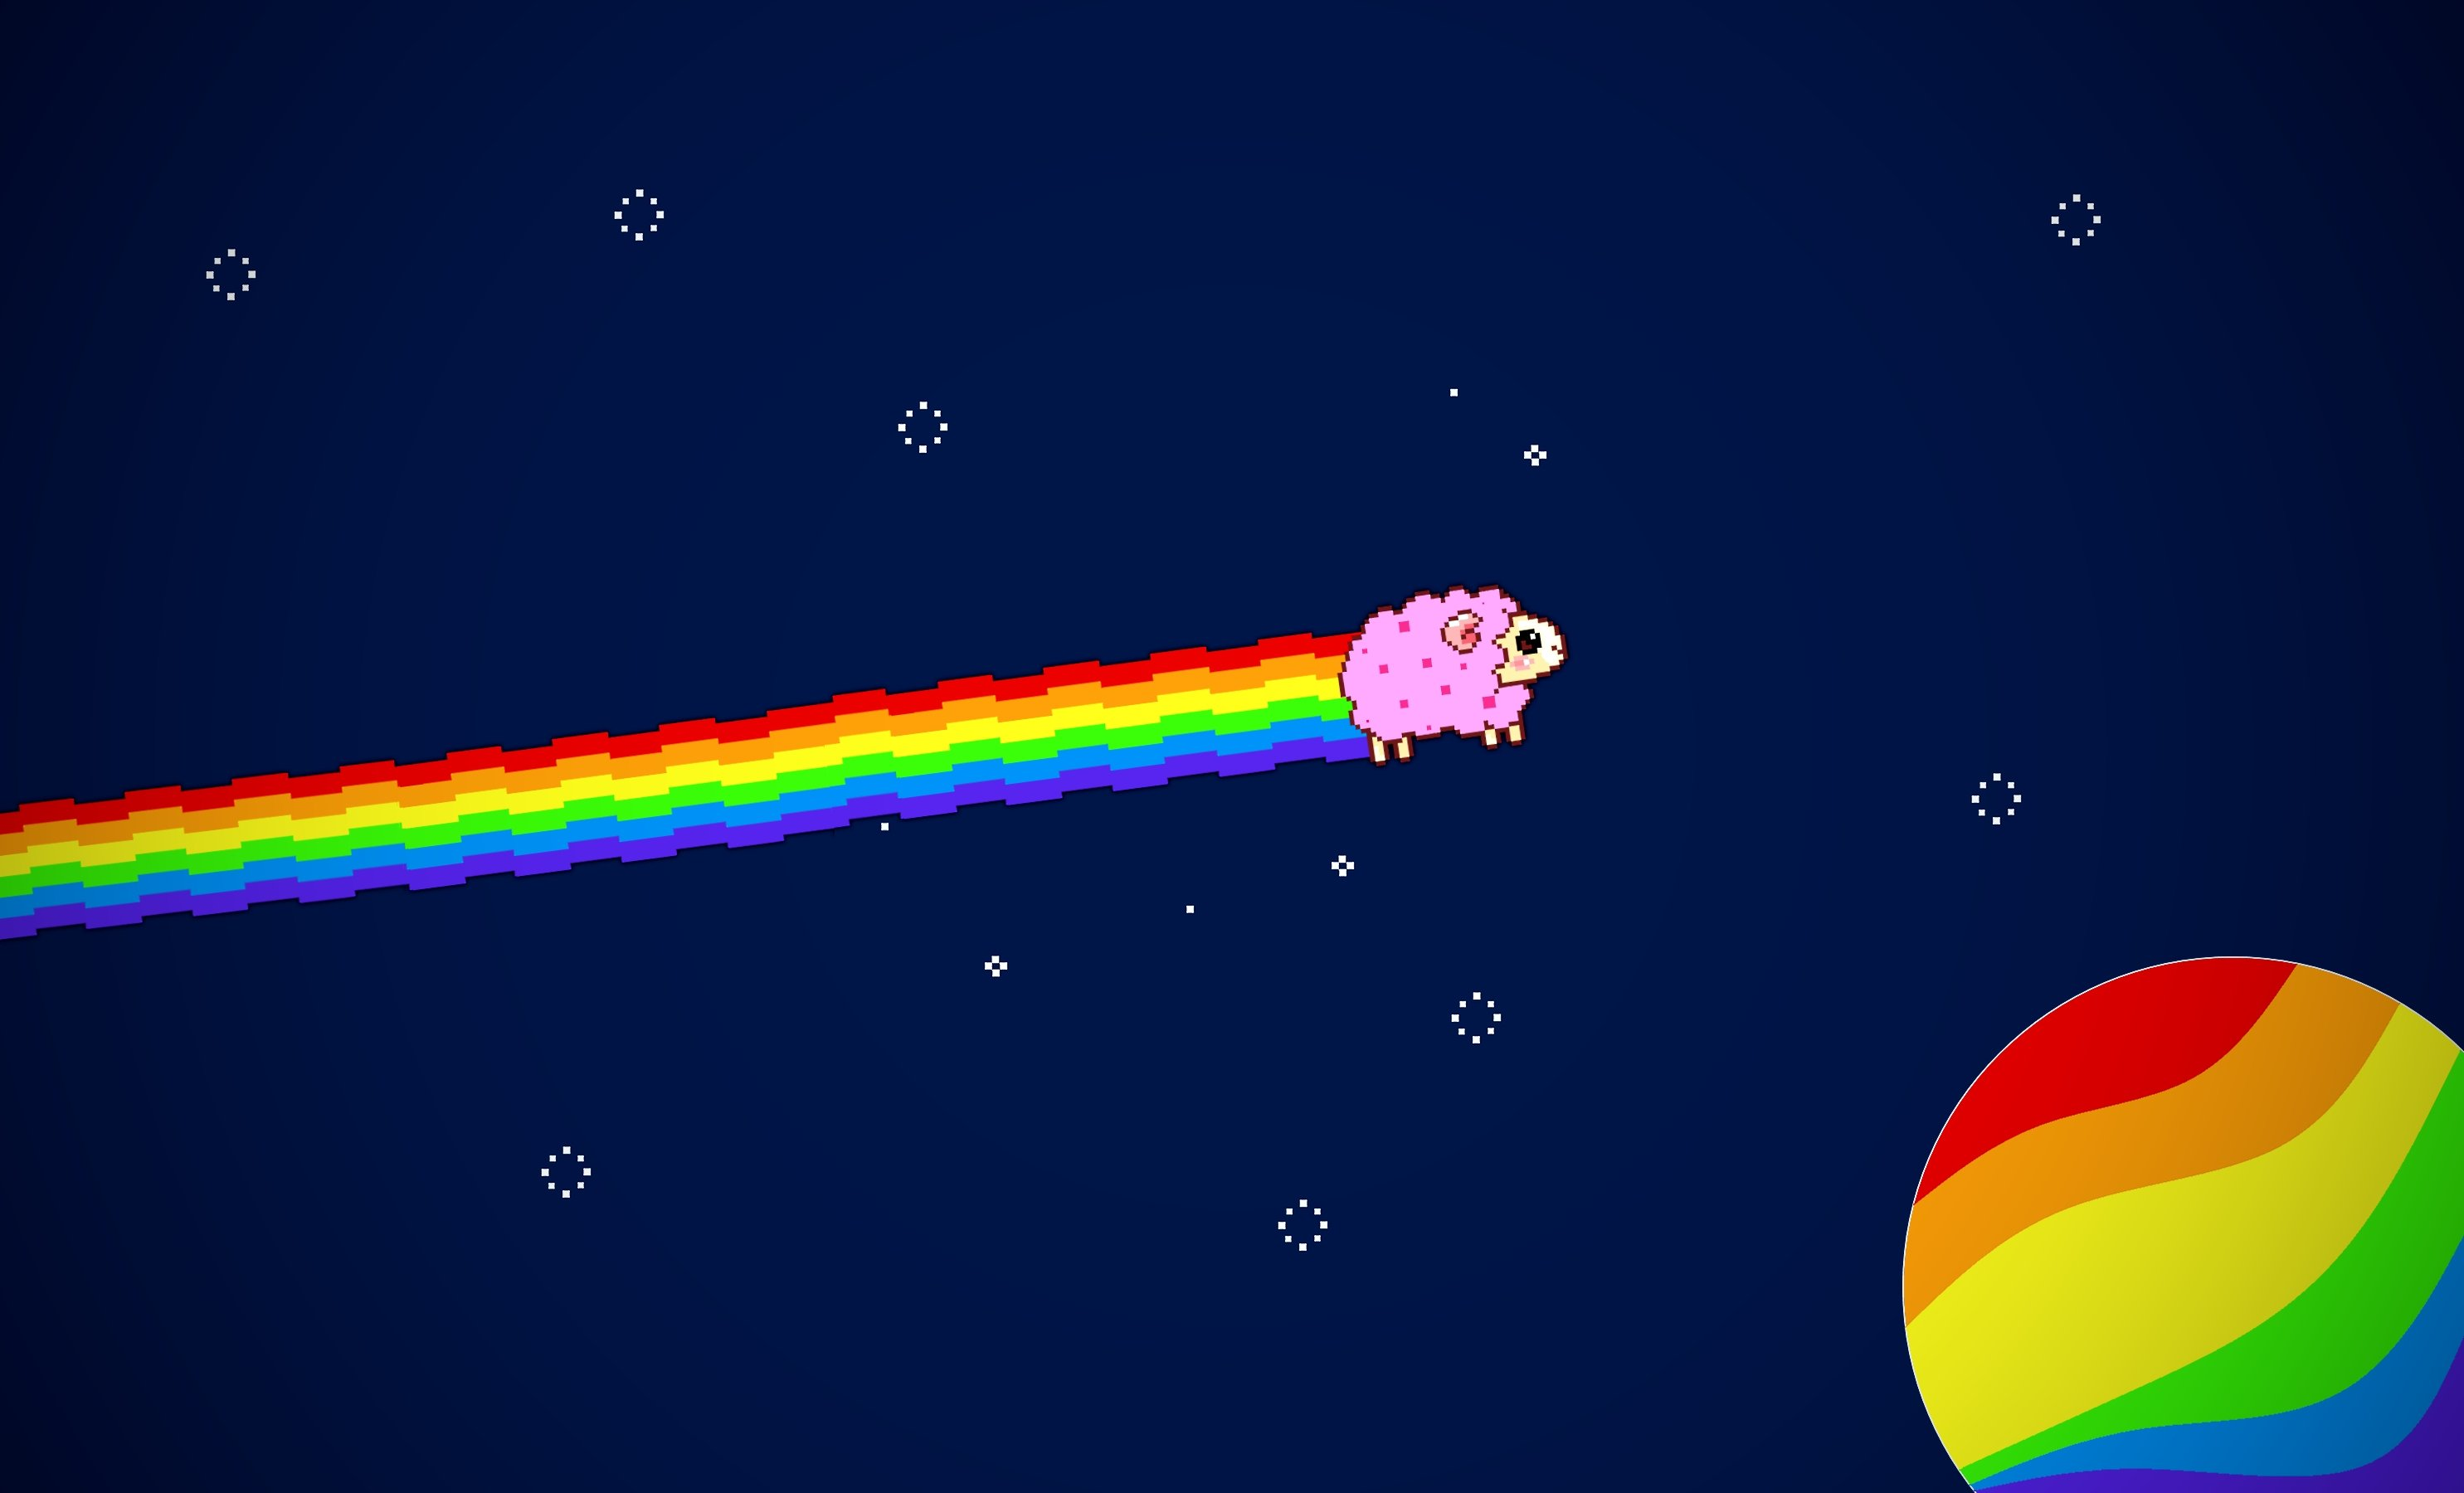 Sheep Nyan Cat Rainbow Limitless TomLeevis Space Pixel Stars Easy Selfmade Wallpaper